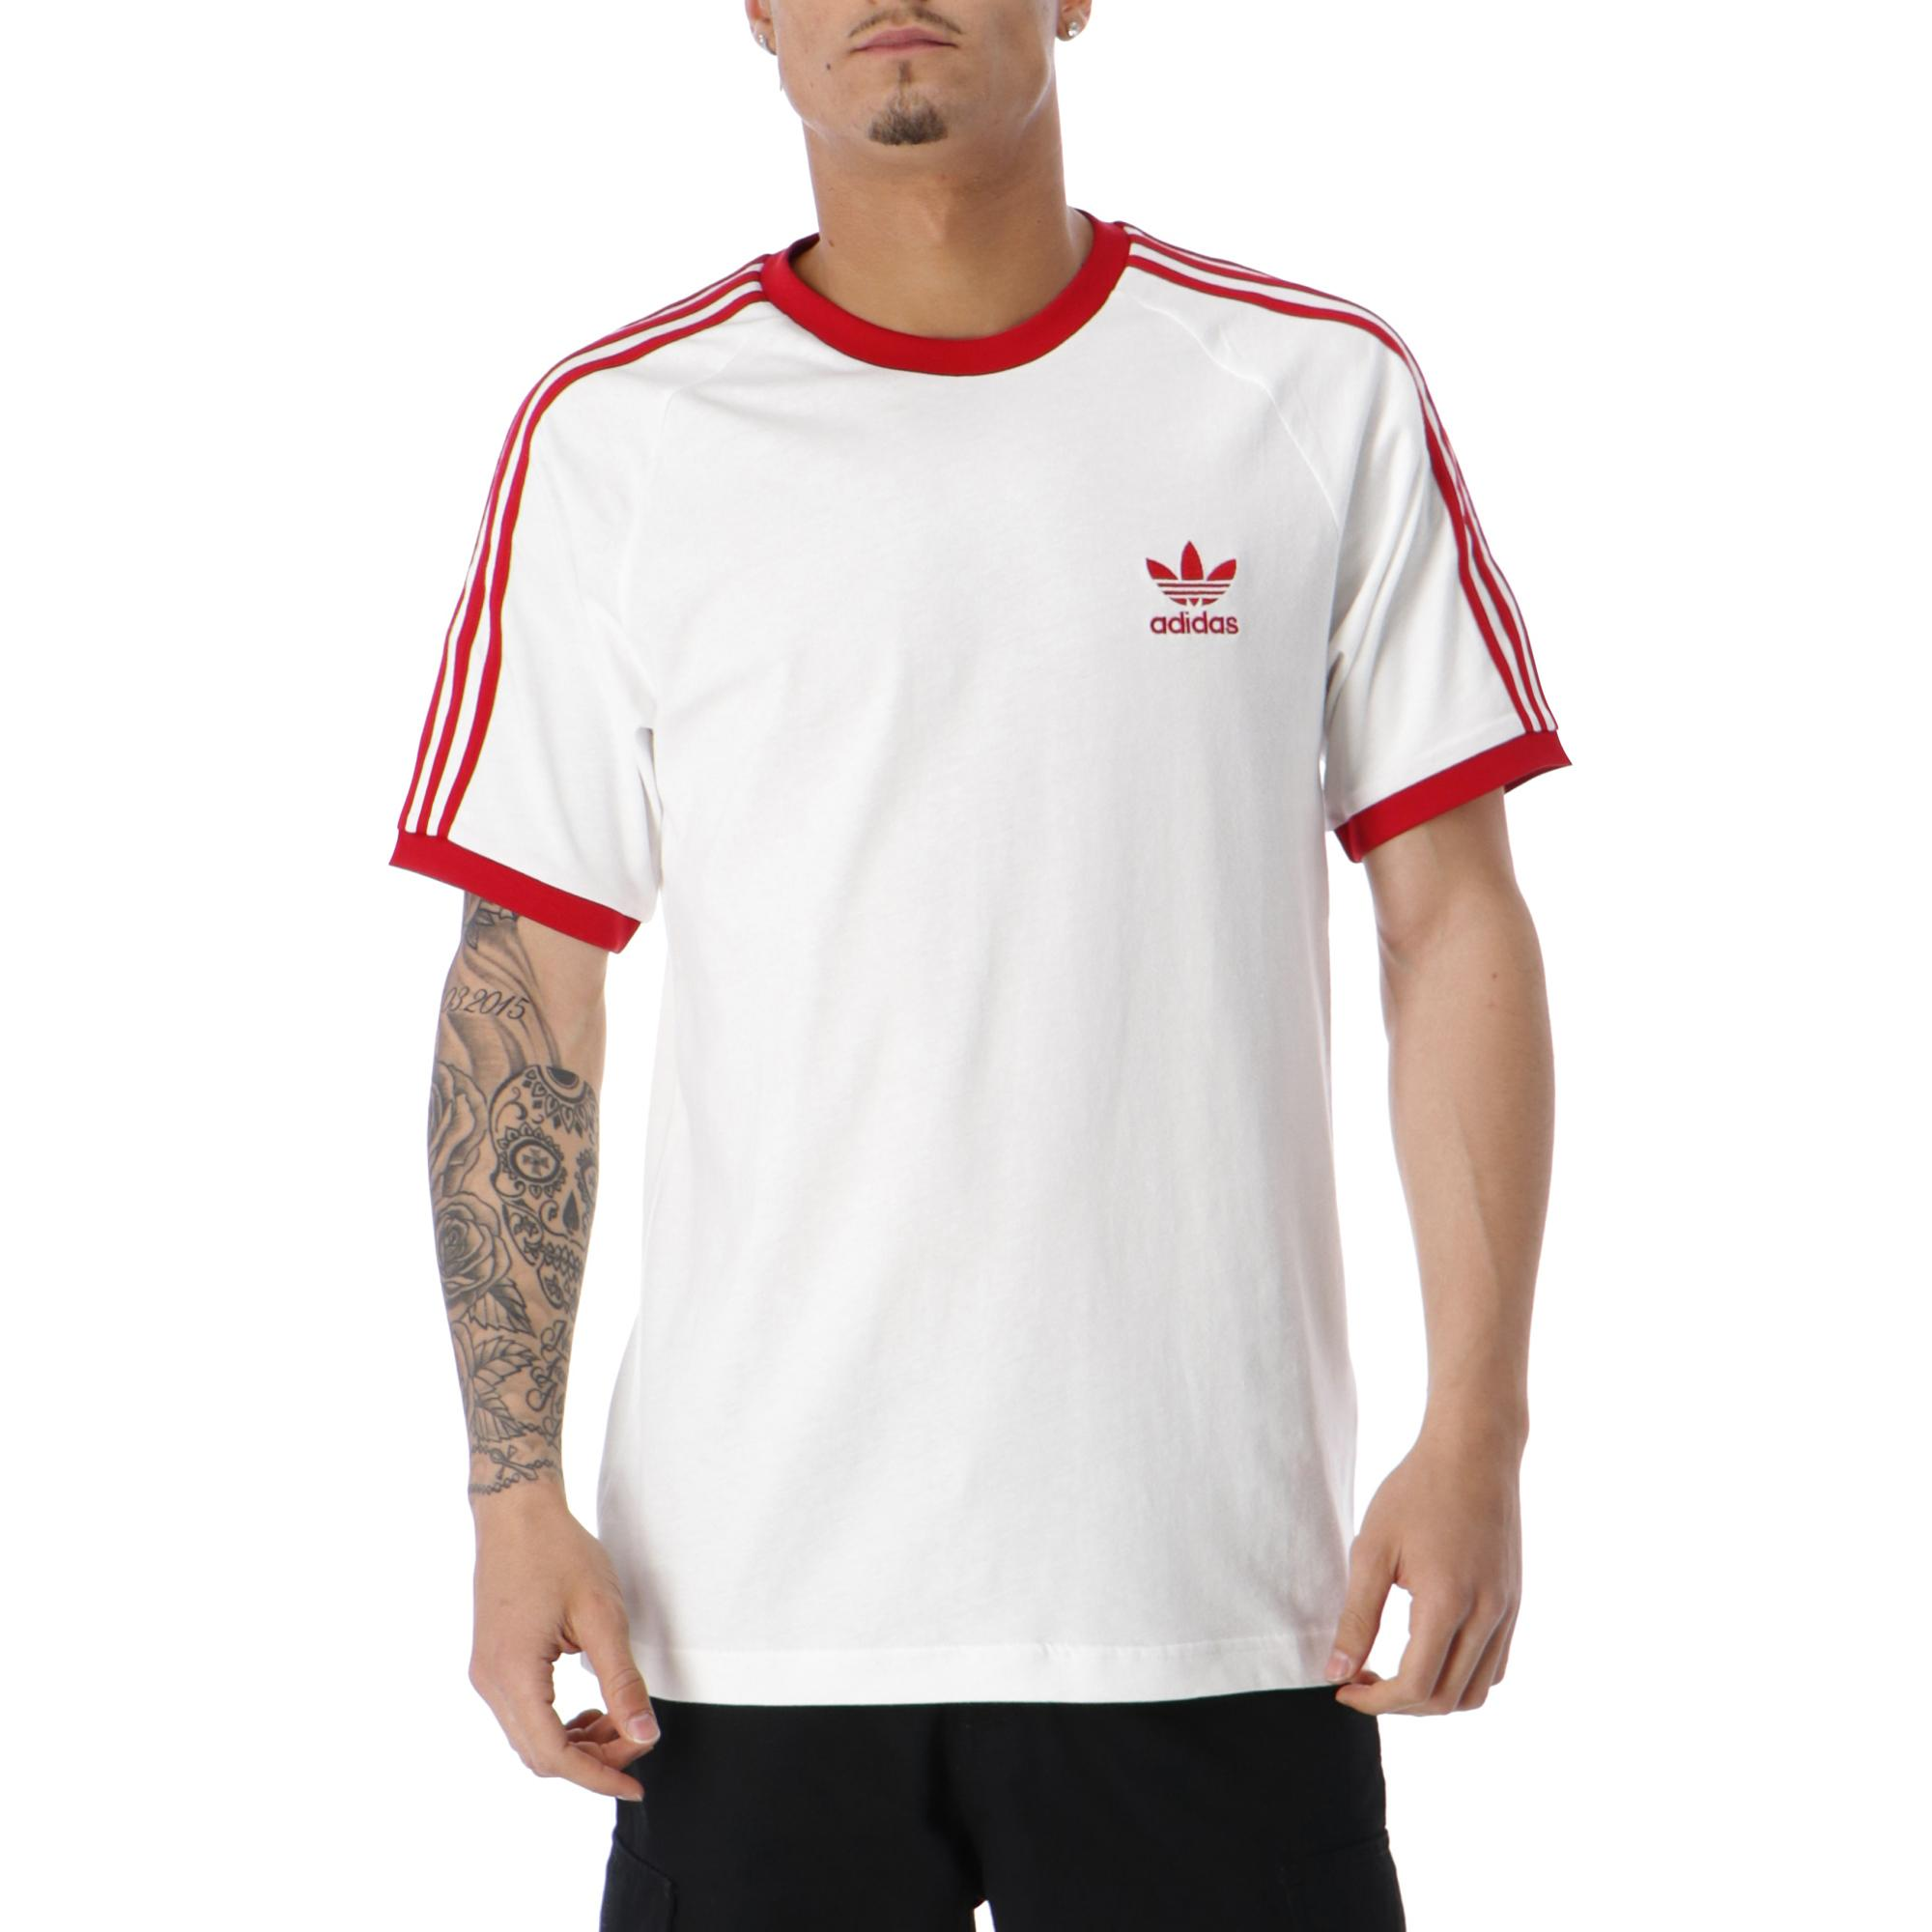 2103e26b181 MAN SHORT SLEEVE TEE. Adidas 3 Stripes T-shirt White power red